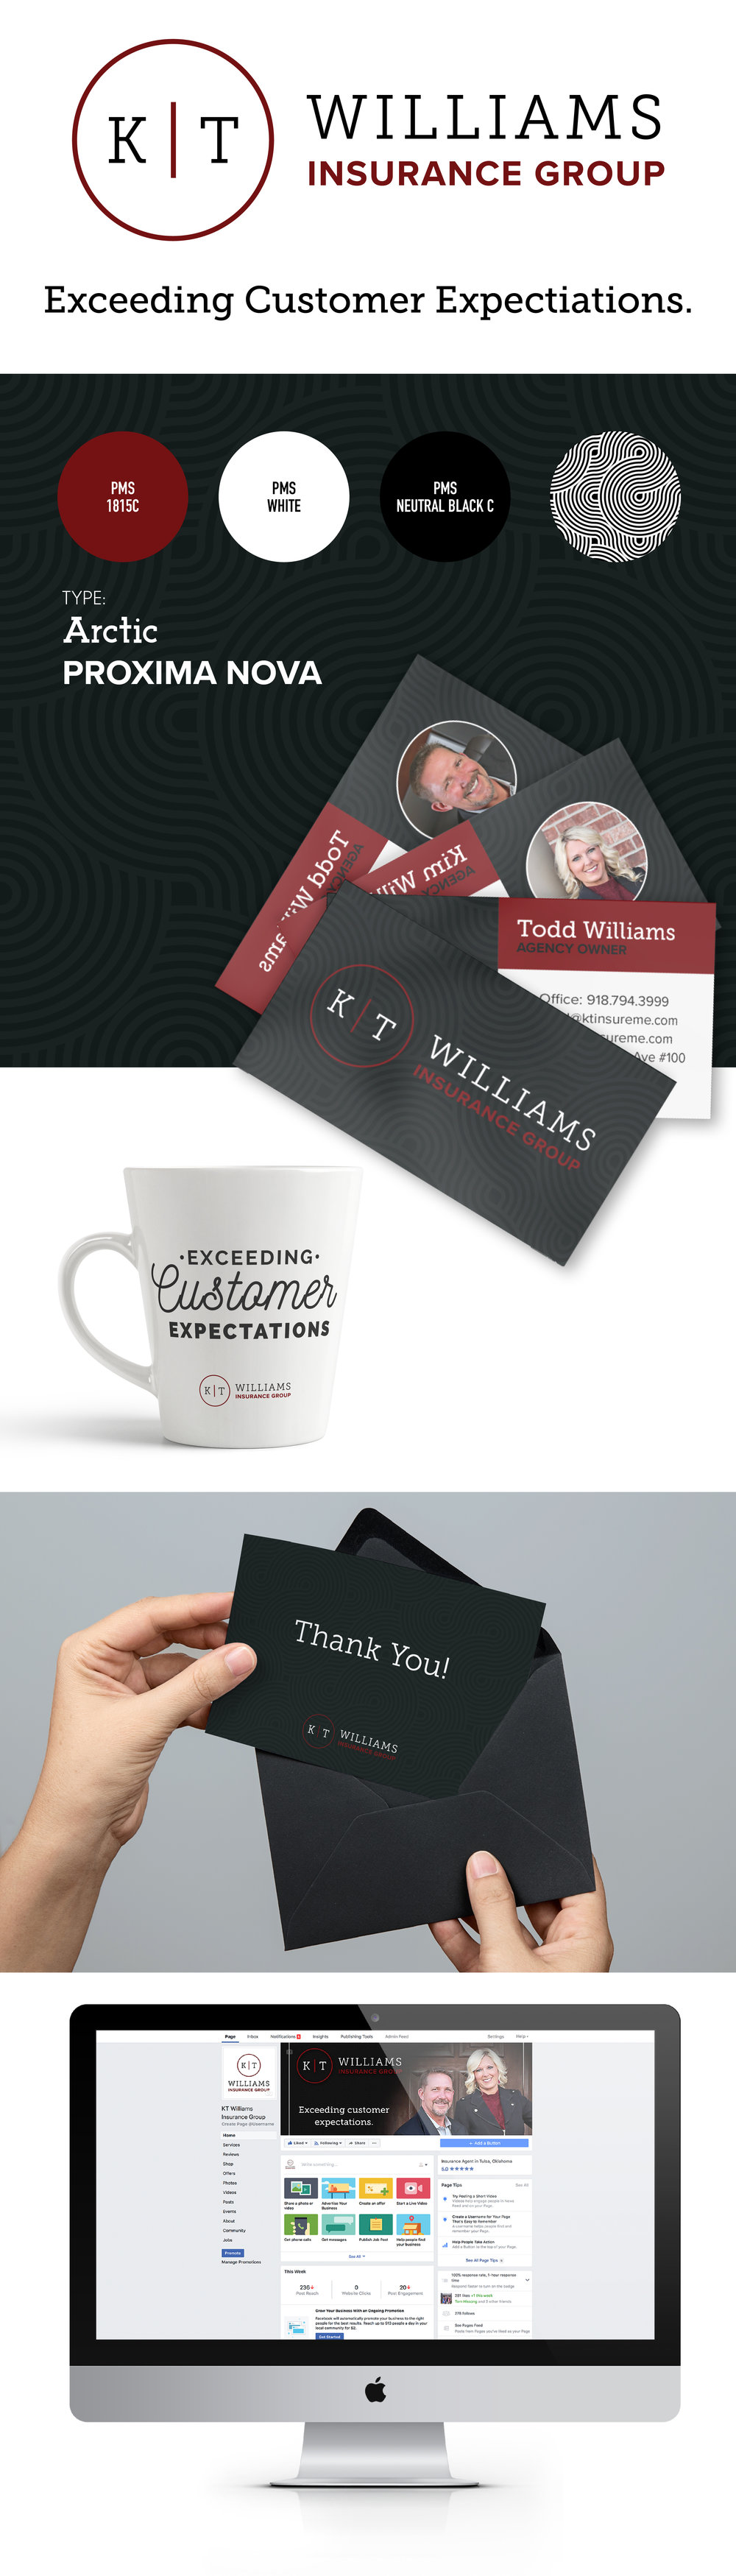 KT Williams - Chatter Marketing